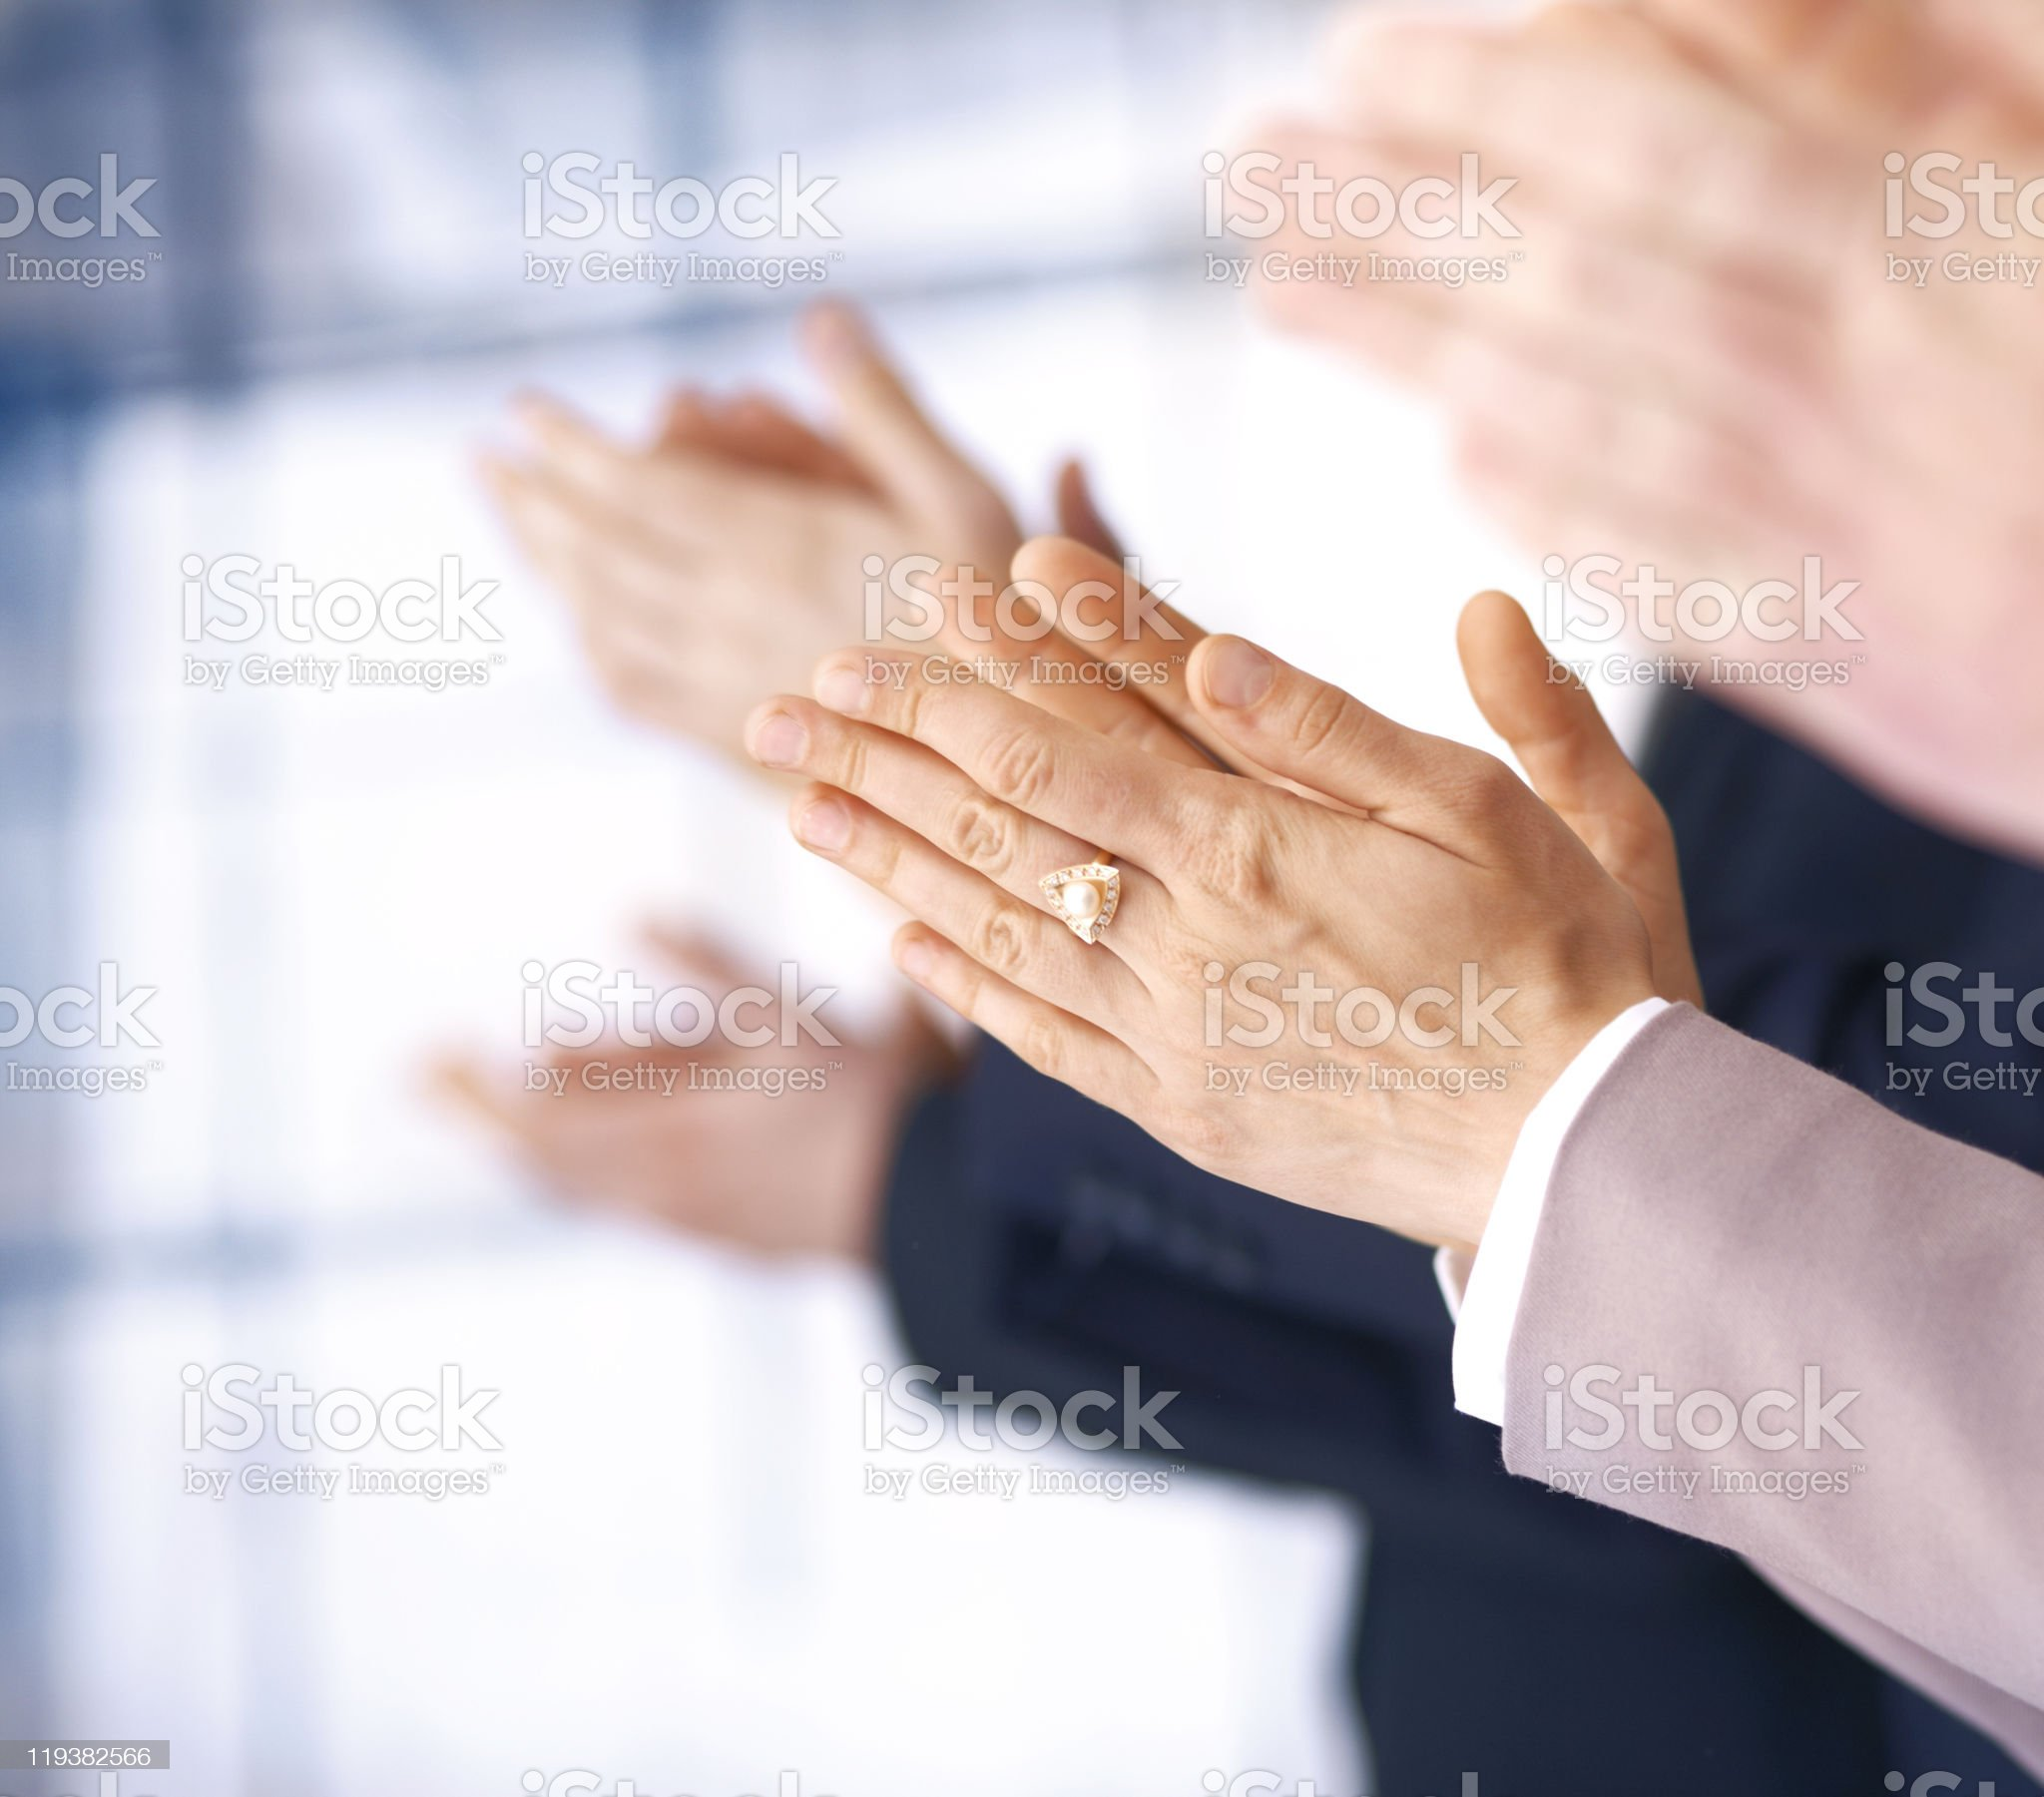 Close-up of hands of people wearing suits clapping royalty-free stock photo